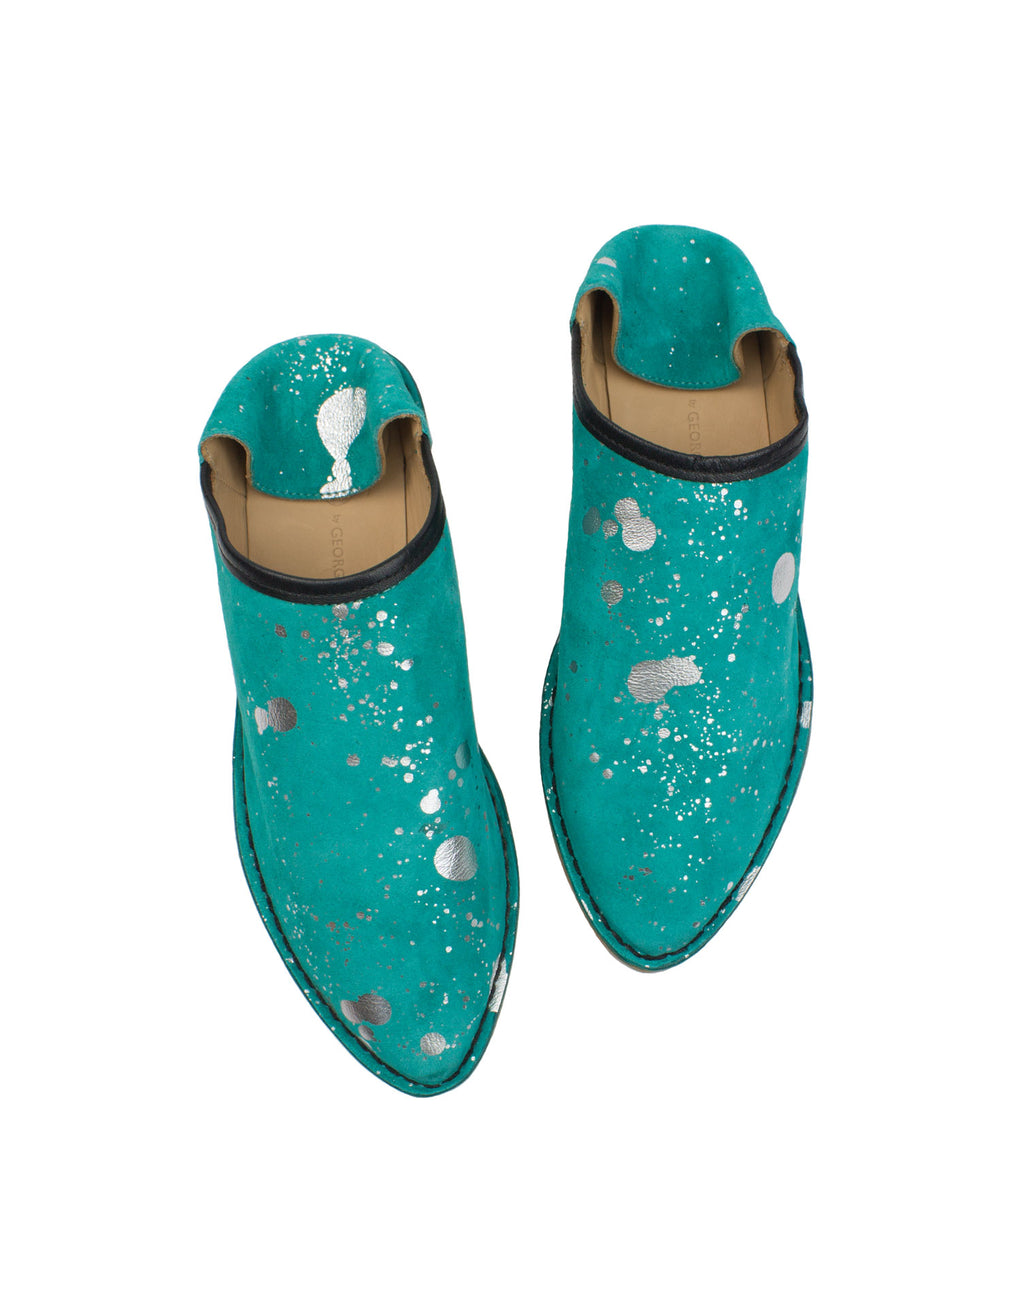 With a hidden wedge and cushioned insole these designer leather slippers provide style in comfort. Love your flats, this is an outdoor shoe with an indoor attitude.